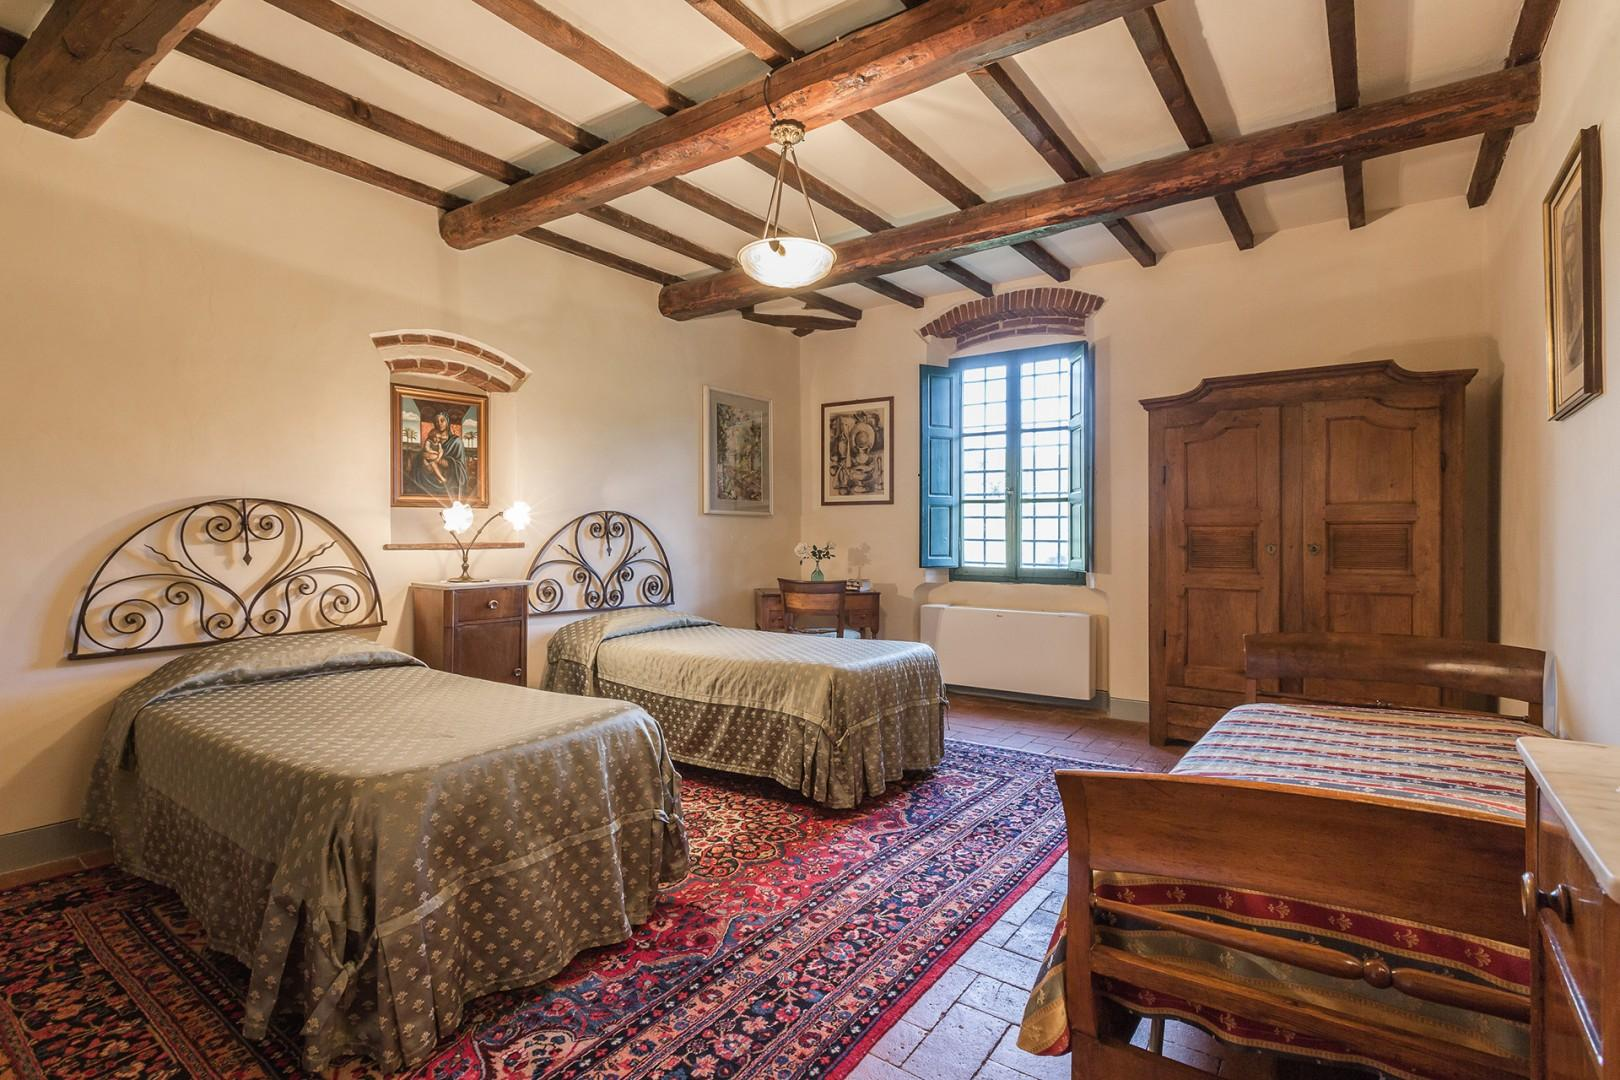 Bedroom 5 has three beds. The wardrobe, bedside table and bureau date from the 1700s.